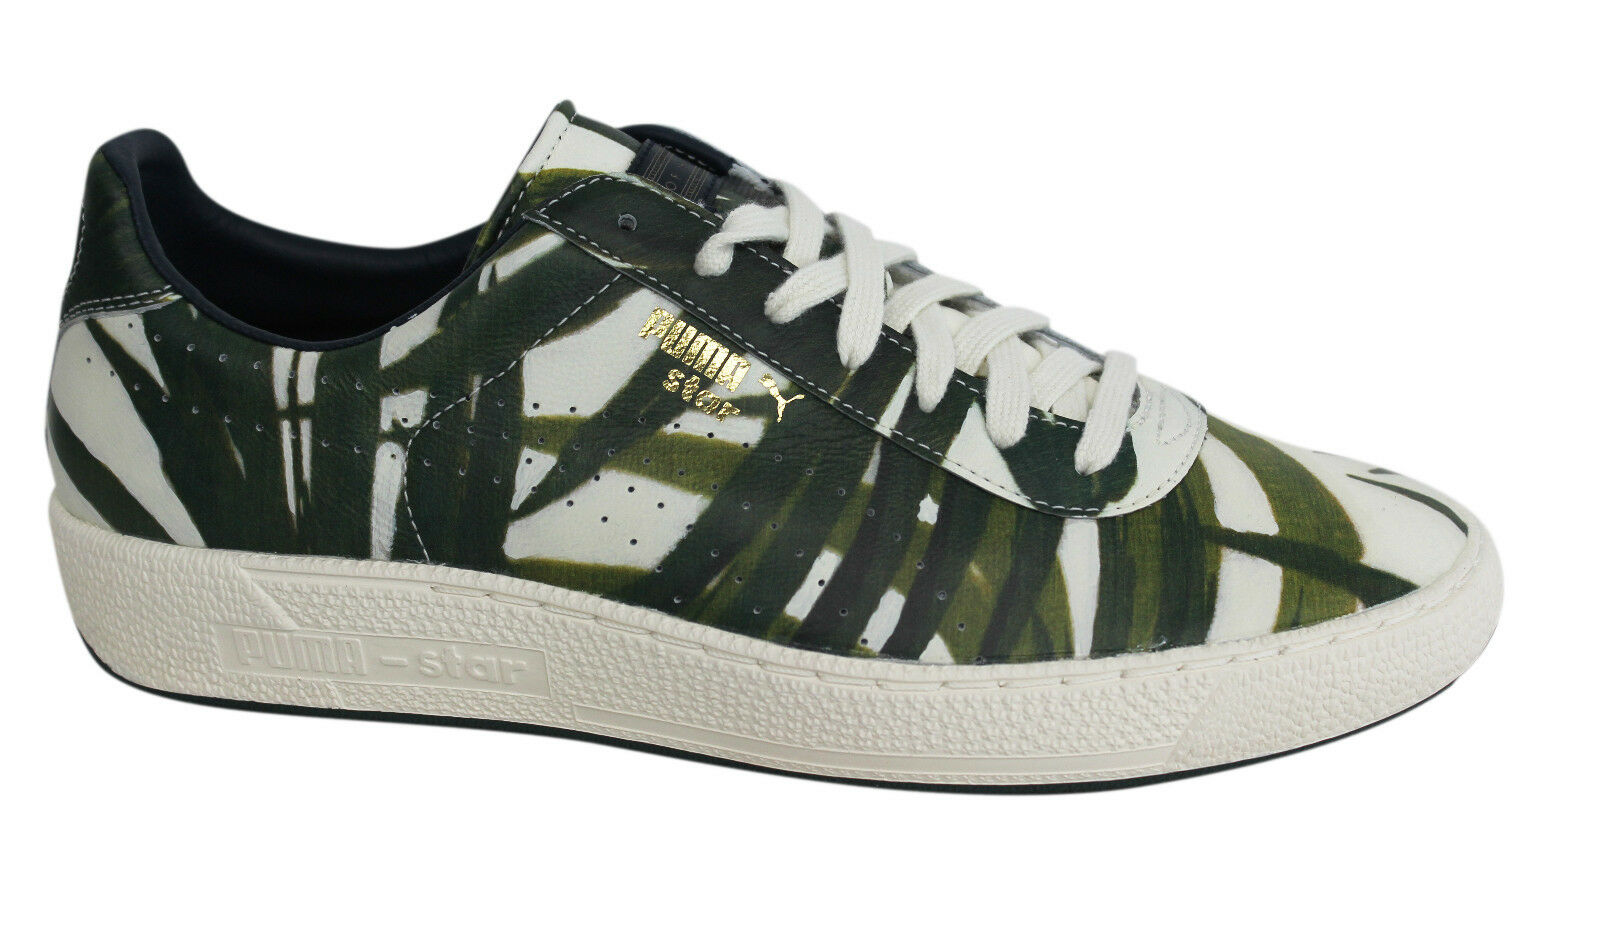 0a9b2685257 PUMA Star X House of Hackney HOH Mens Lace Up Leather Trainers ...